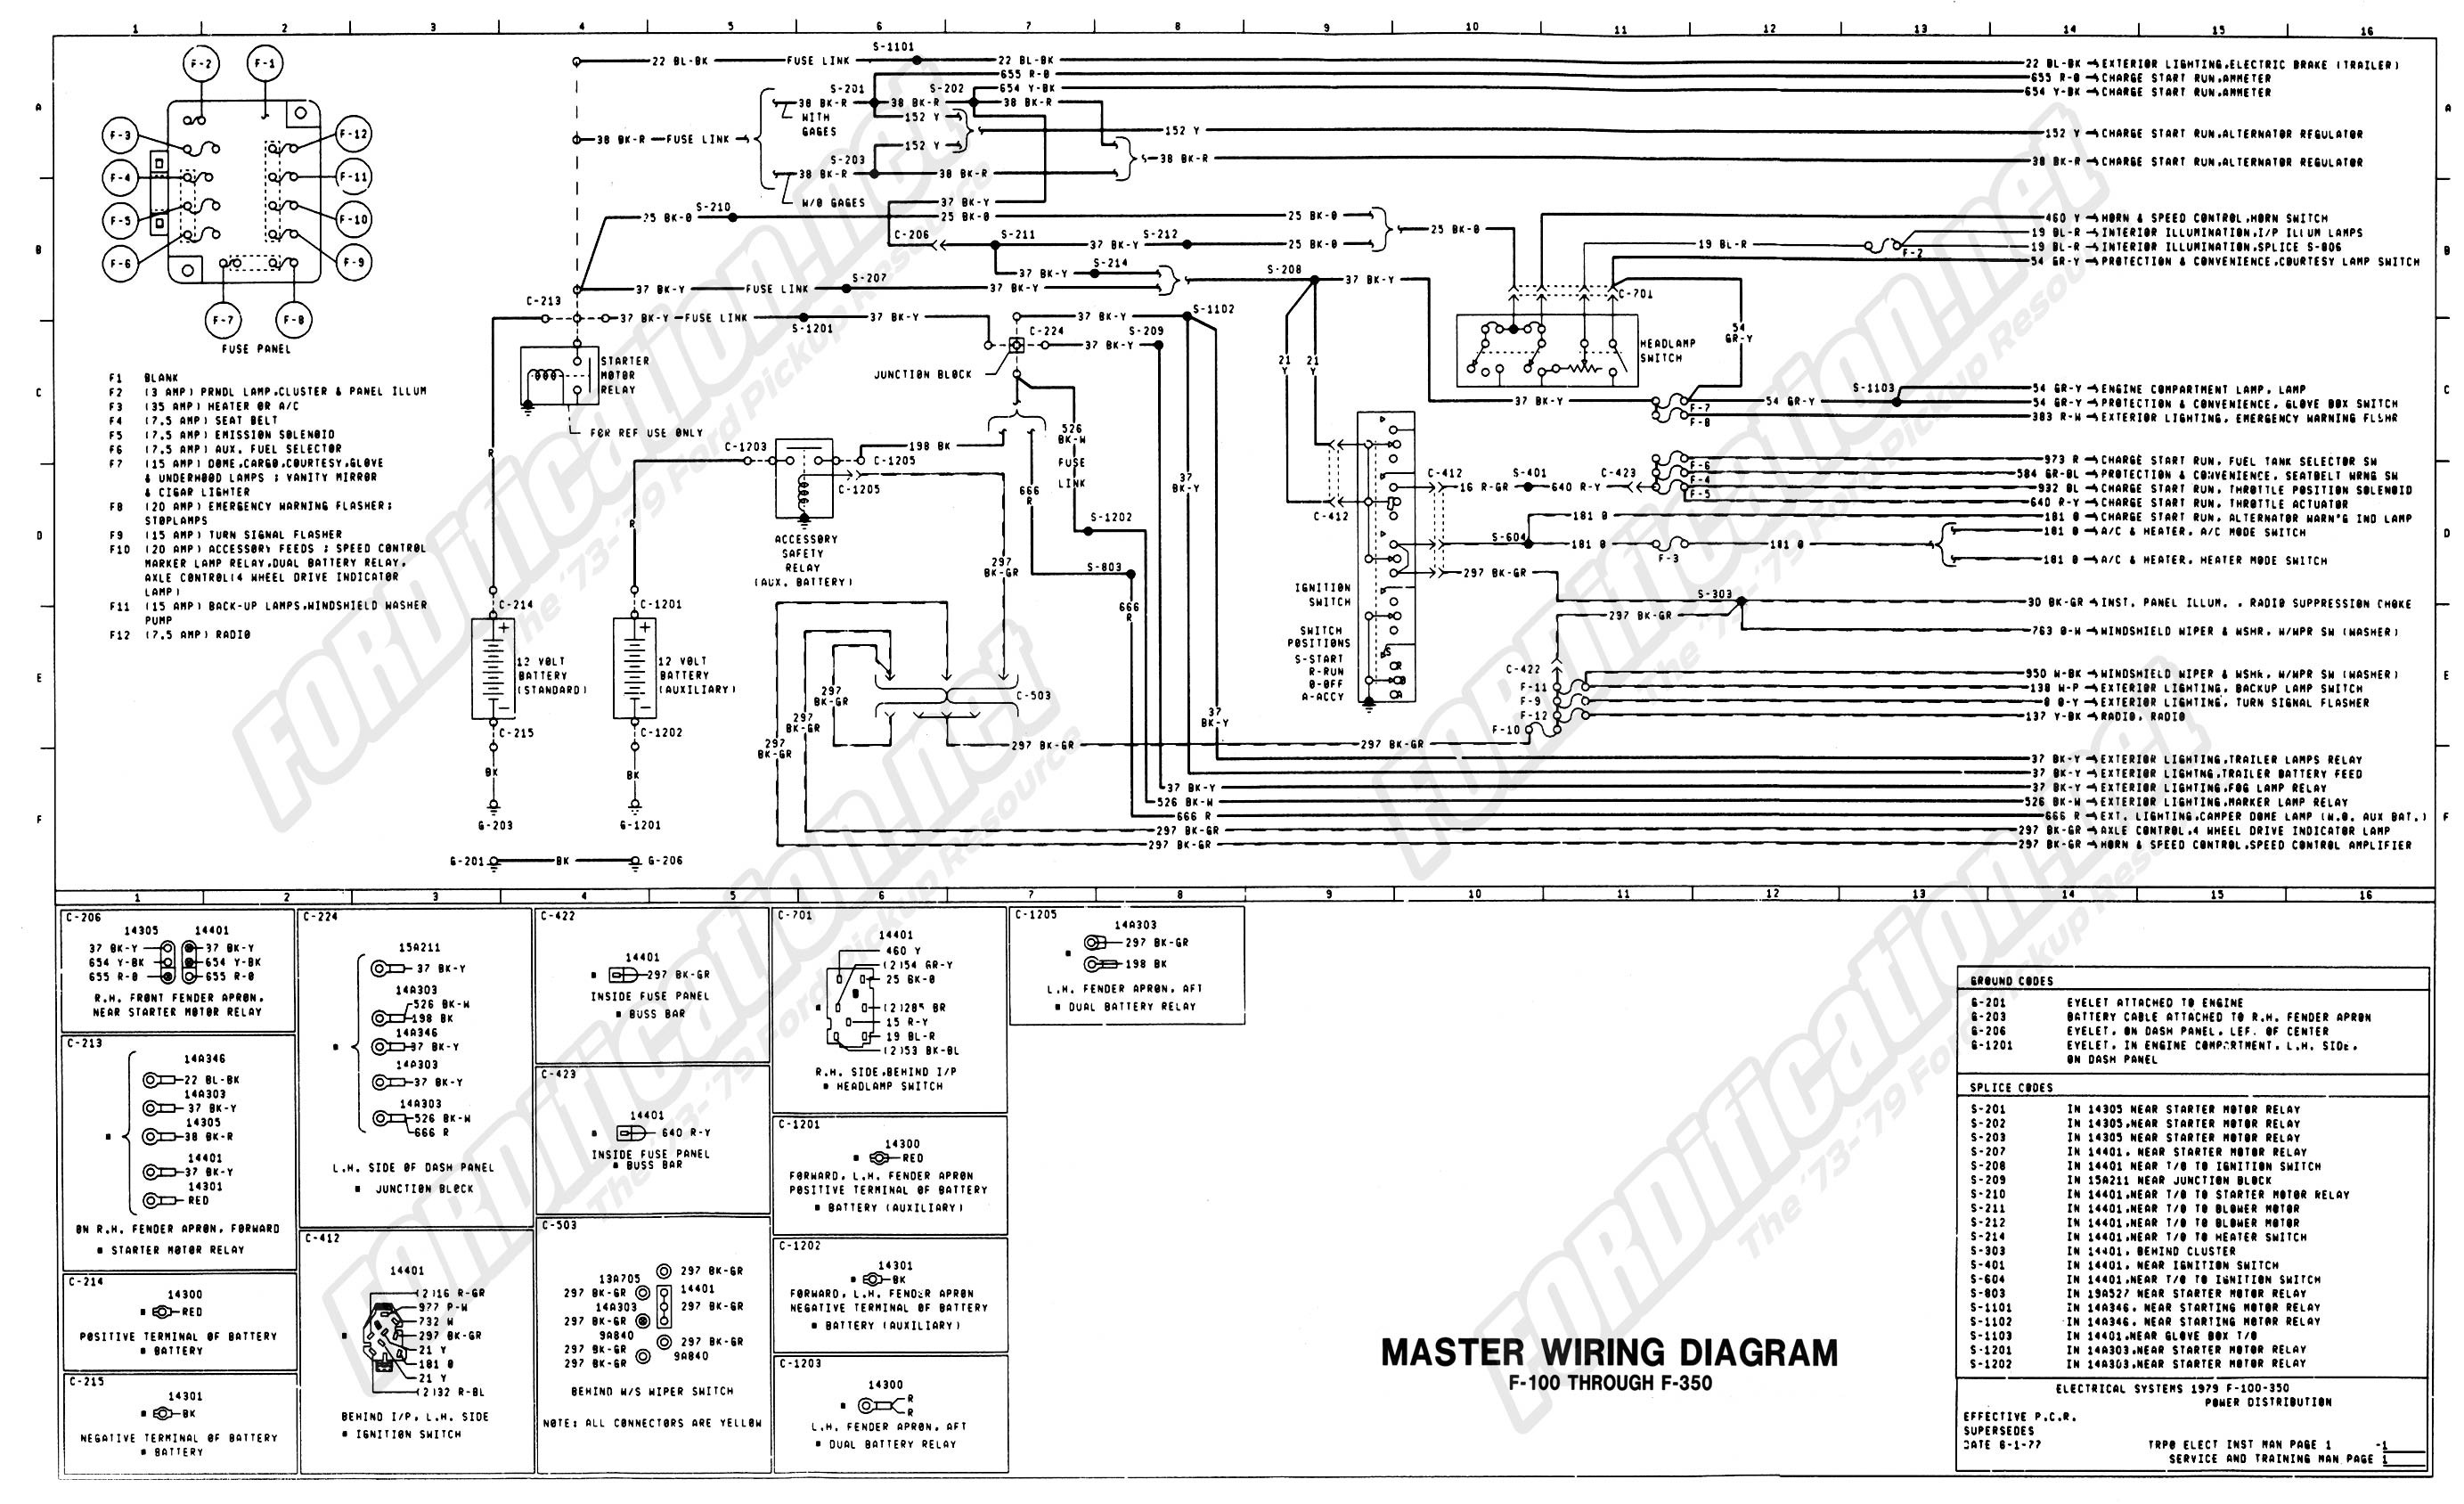 Ford F250 Engine Diagram 79 F150 solenoid Wiring Diagram ford Truck  Enthusiasts forums Of Ford F250